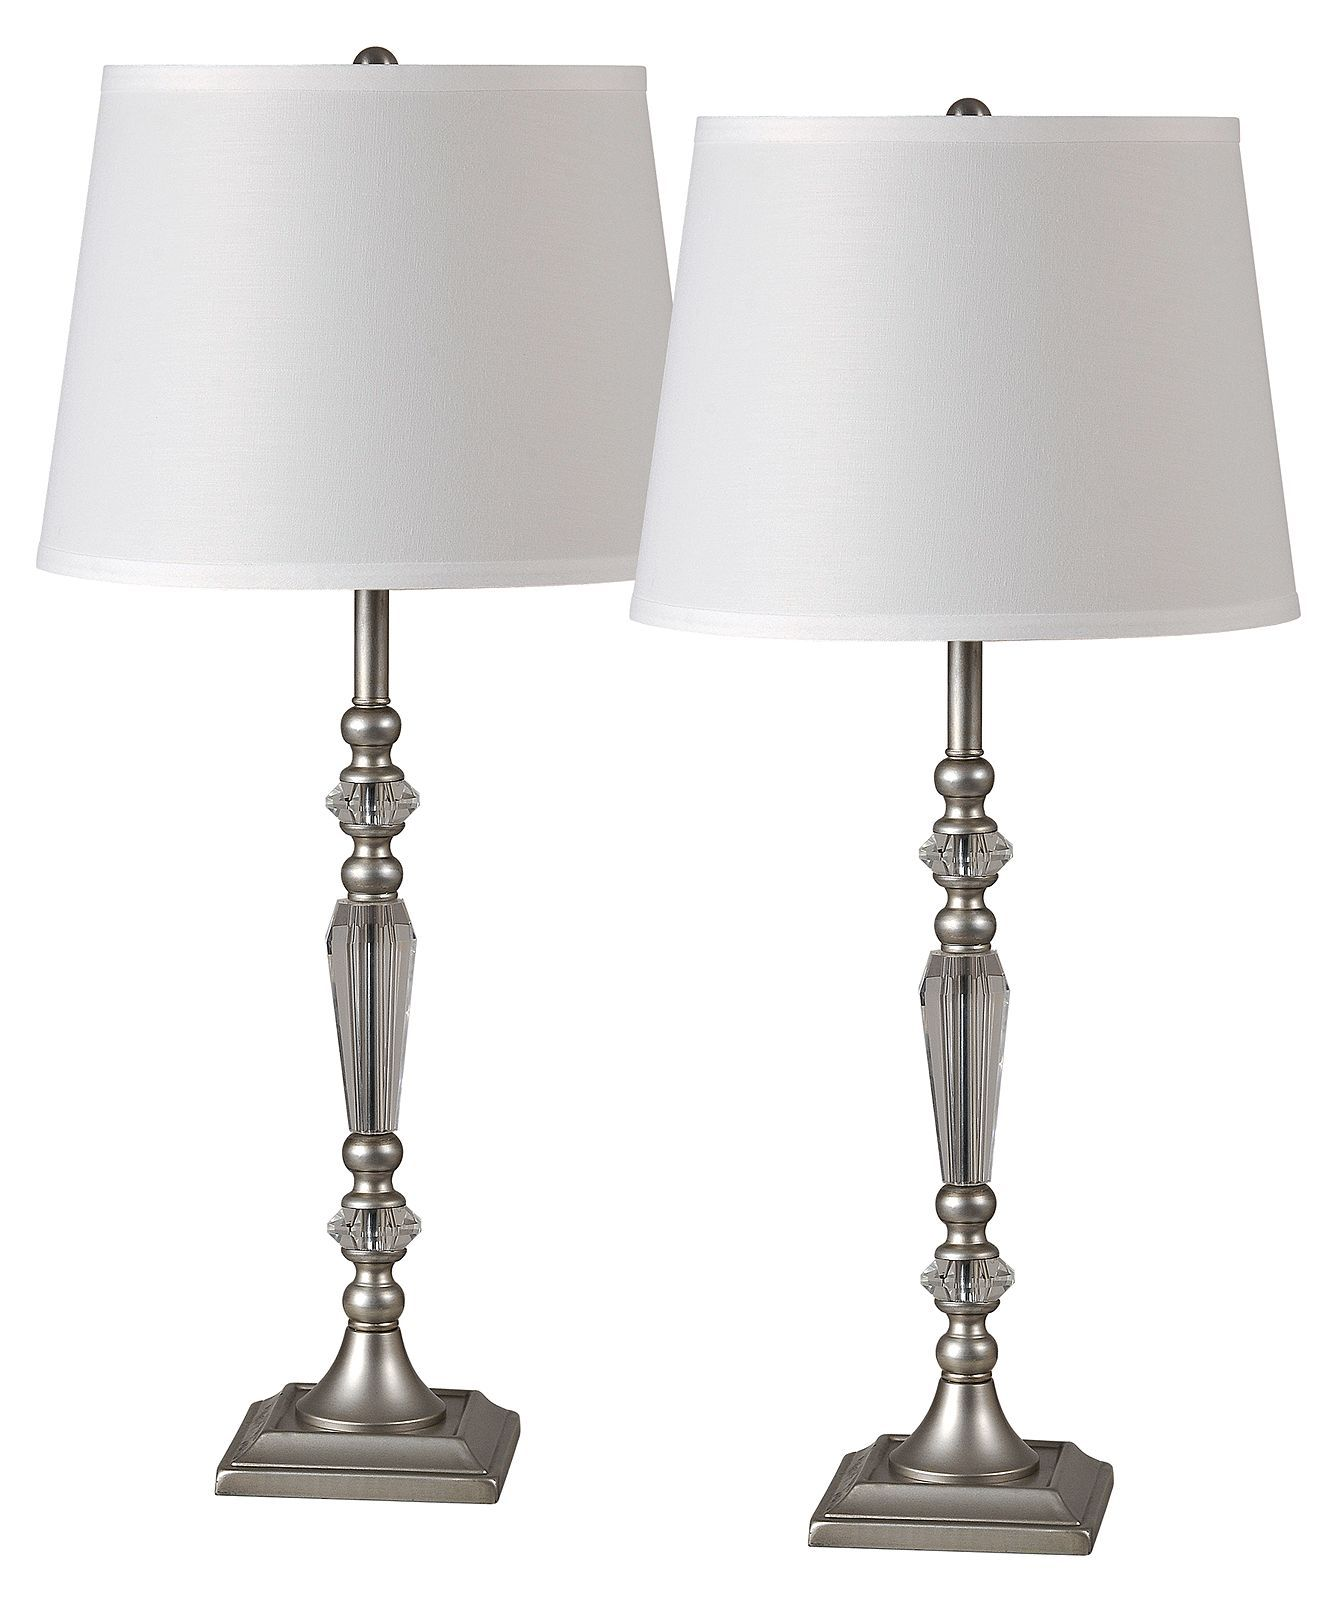 Macys Table Lamps Magnificent Renwil Table Lamp Set Edna  Shop All Lighting  For The Home Design Decoration